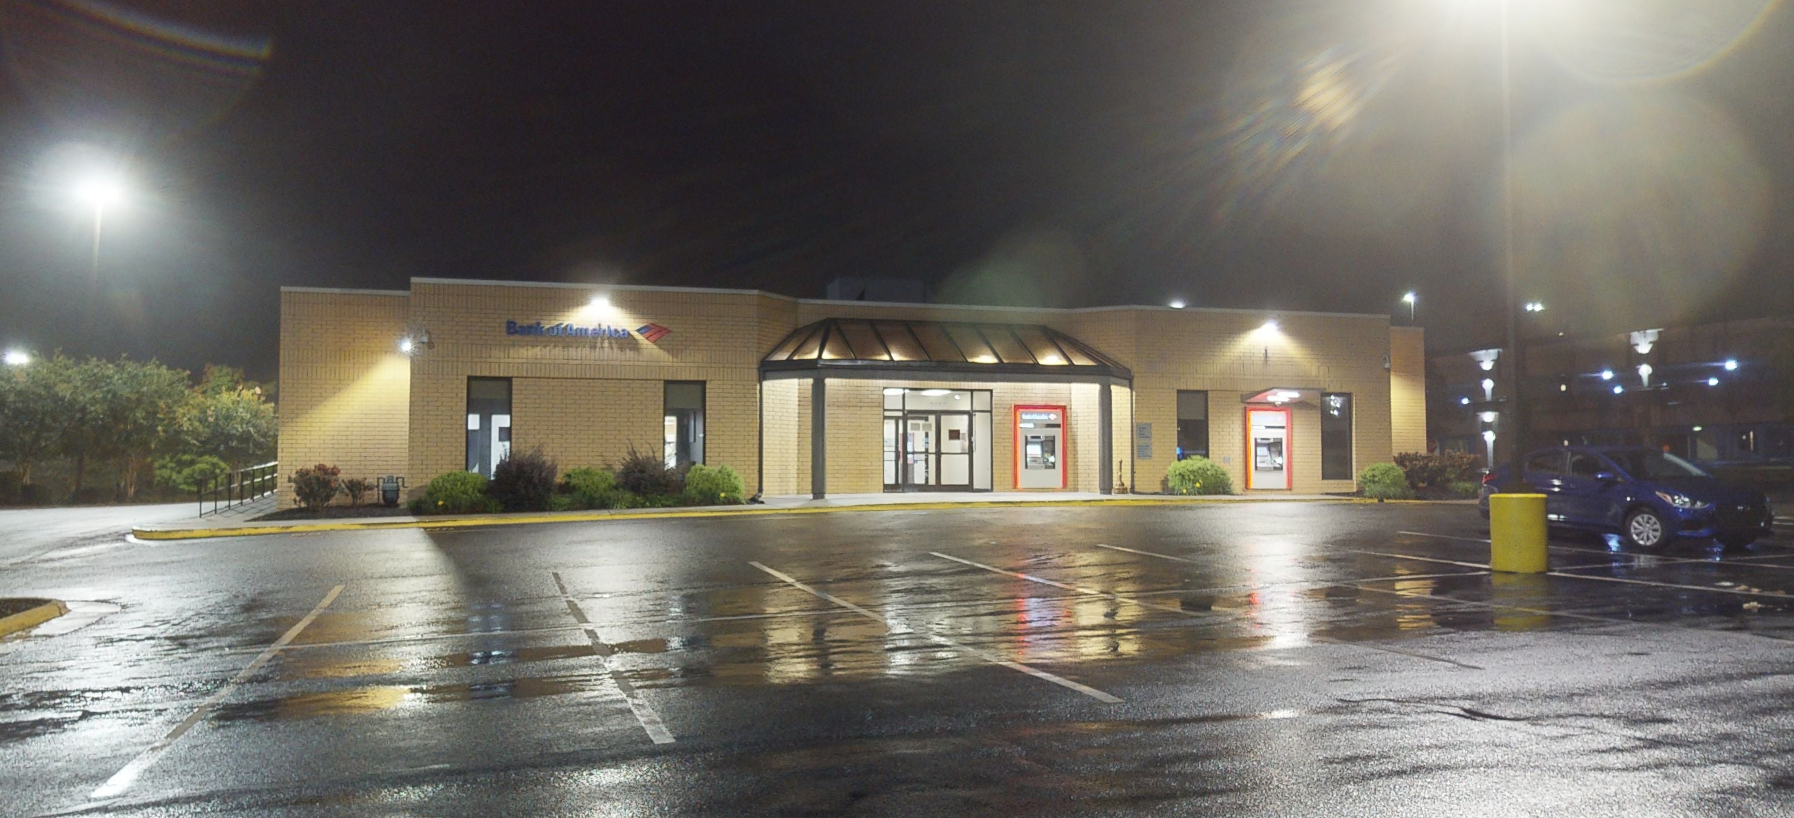 Bank of America financial center with drive-thru ATM and teller | 2105 Pinecroft Rd, Greensboro, NC 27407